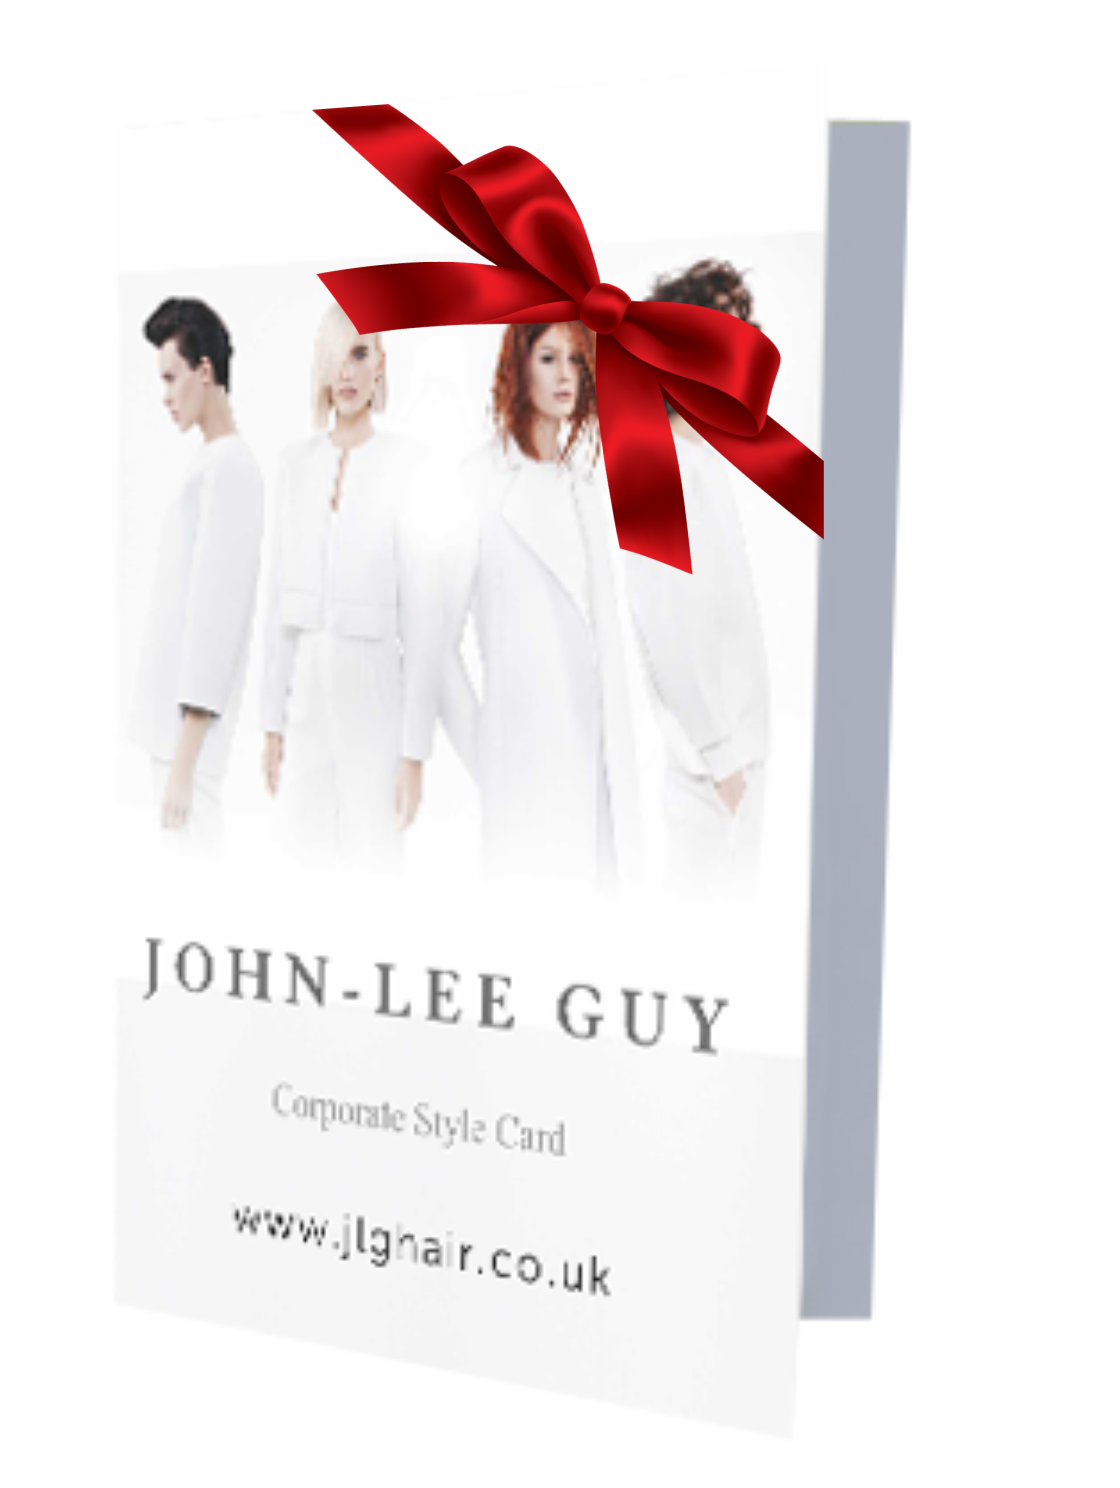 hairdresser offers John Lee Guy Hair